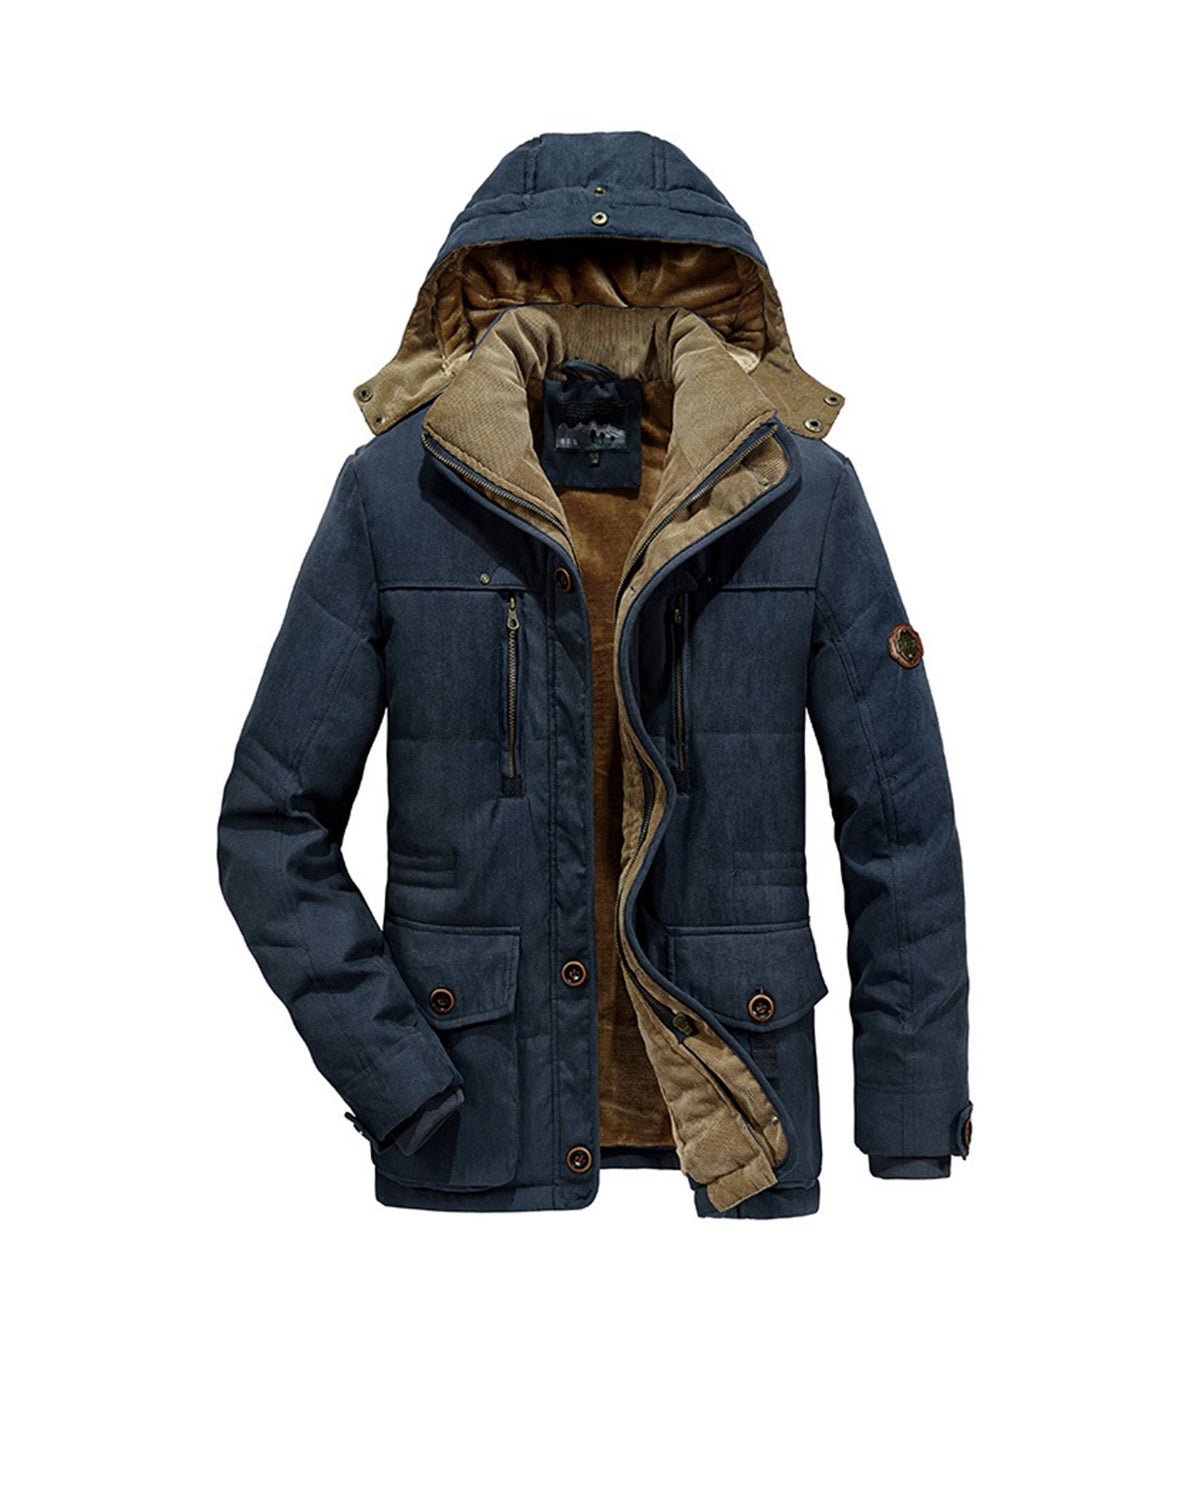 Winter Extra-thick Long Jacket with Stow-away Hood